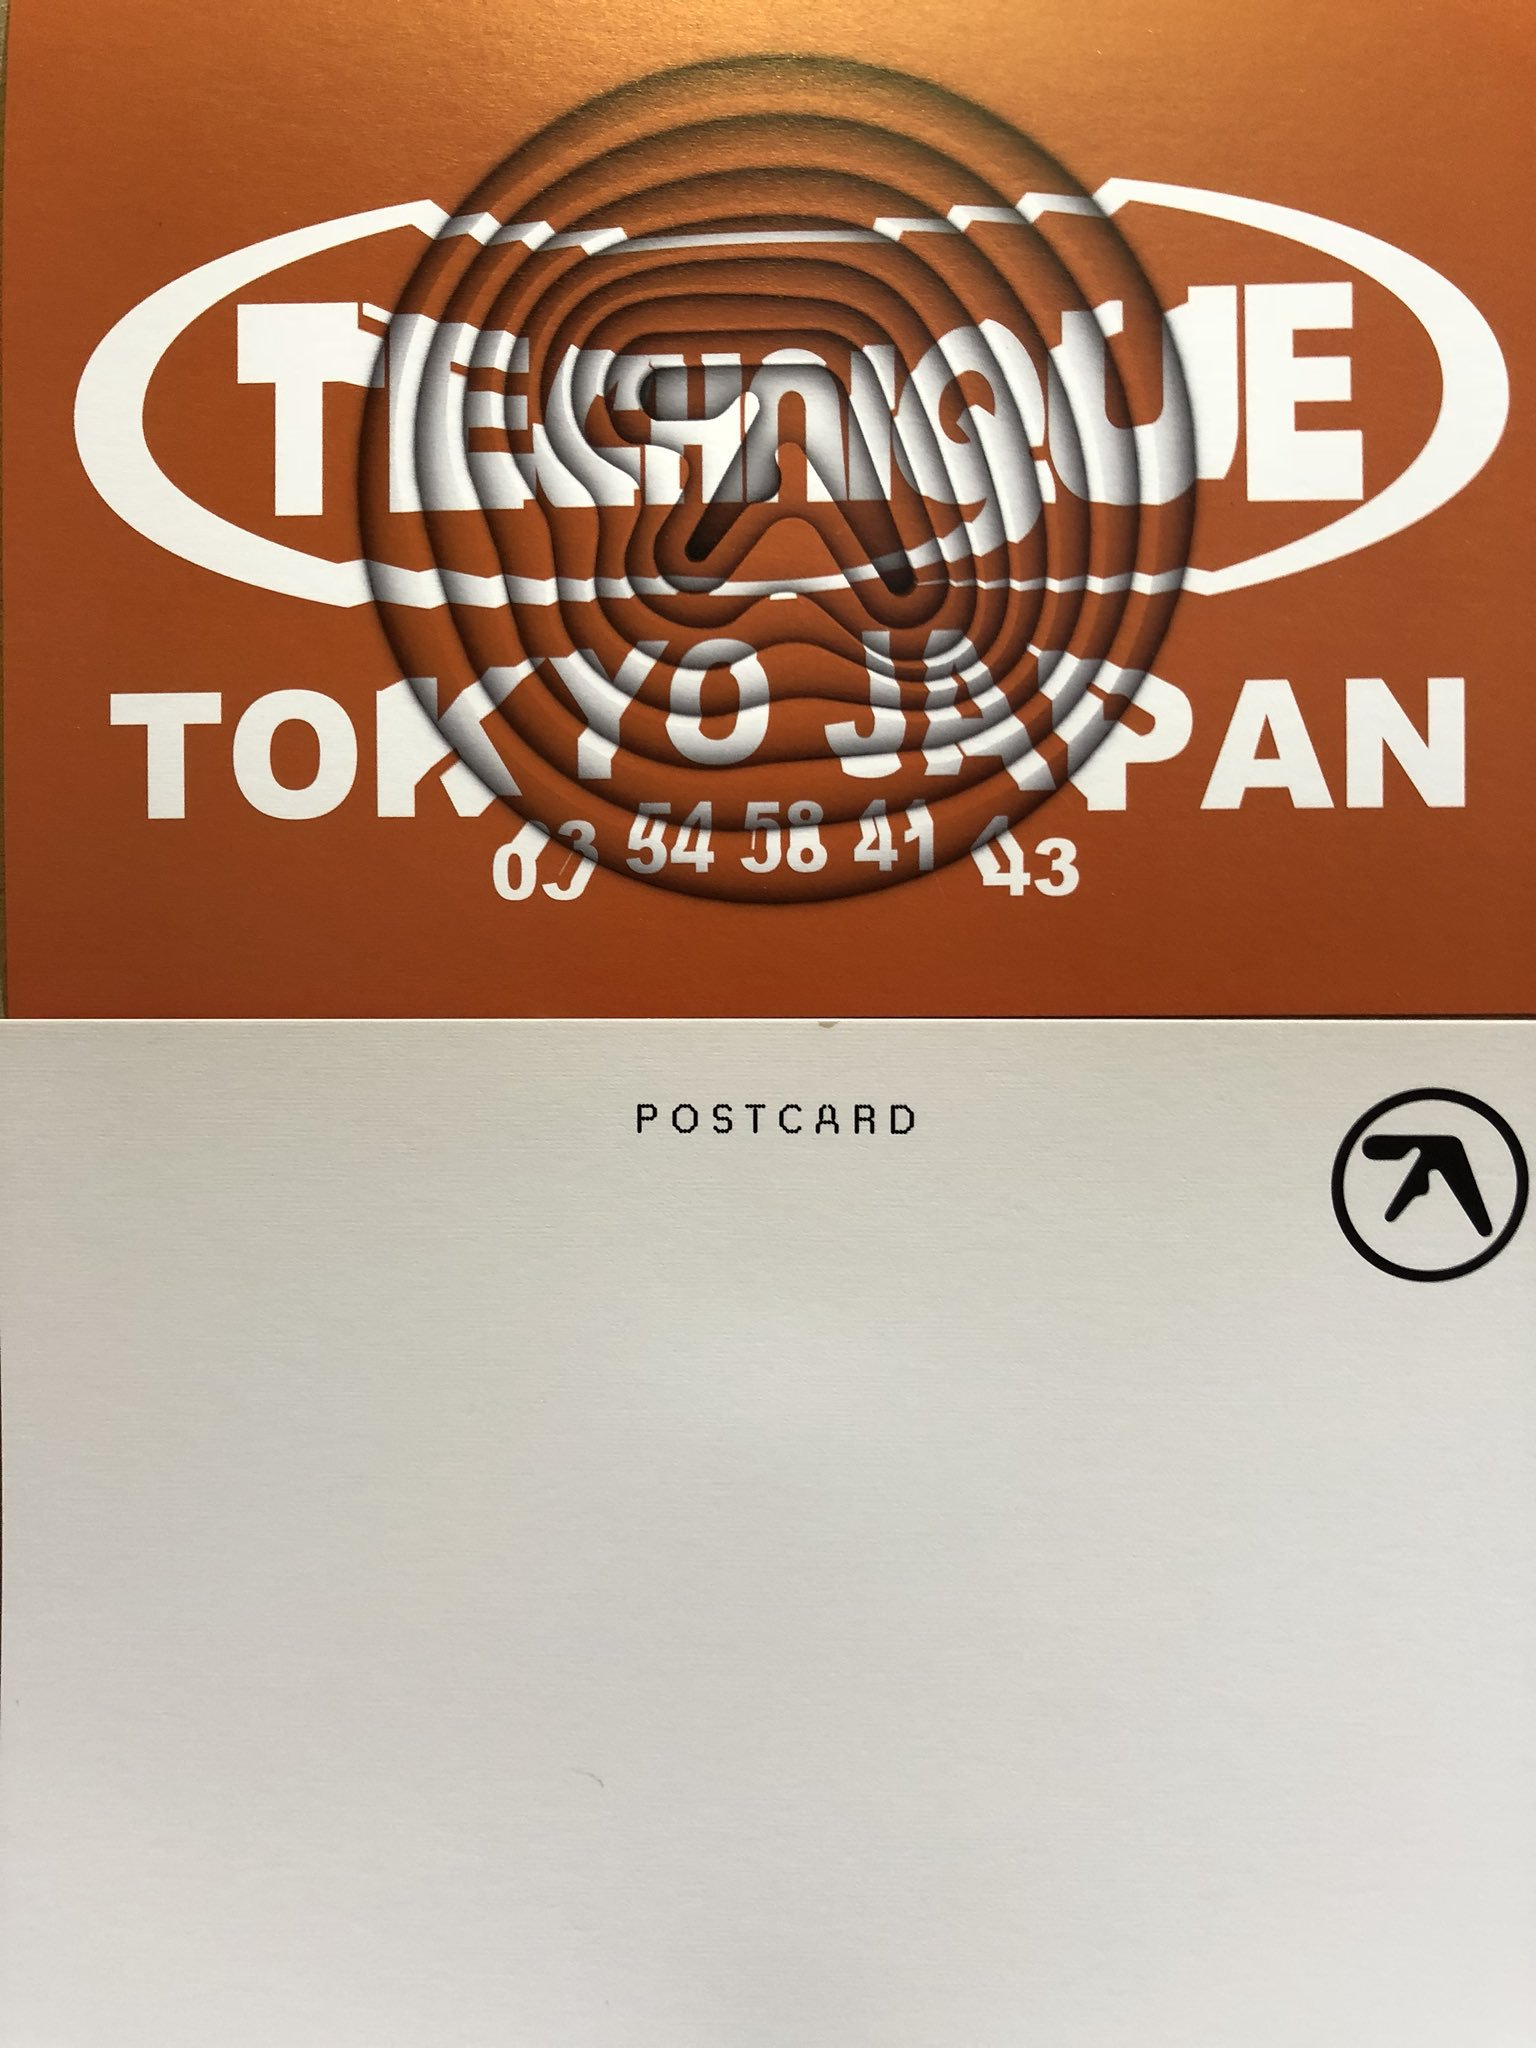 technique-postcardl1dut.jpg